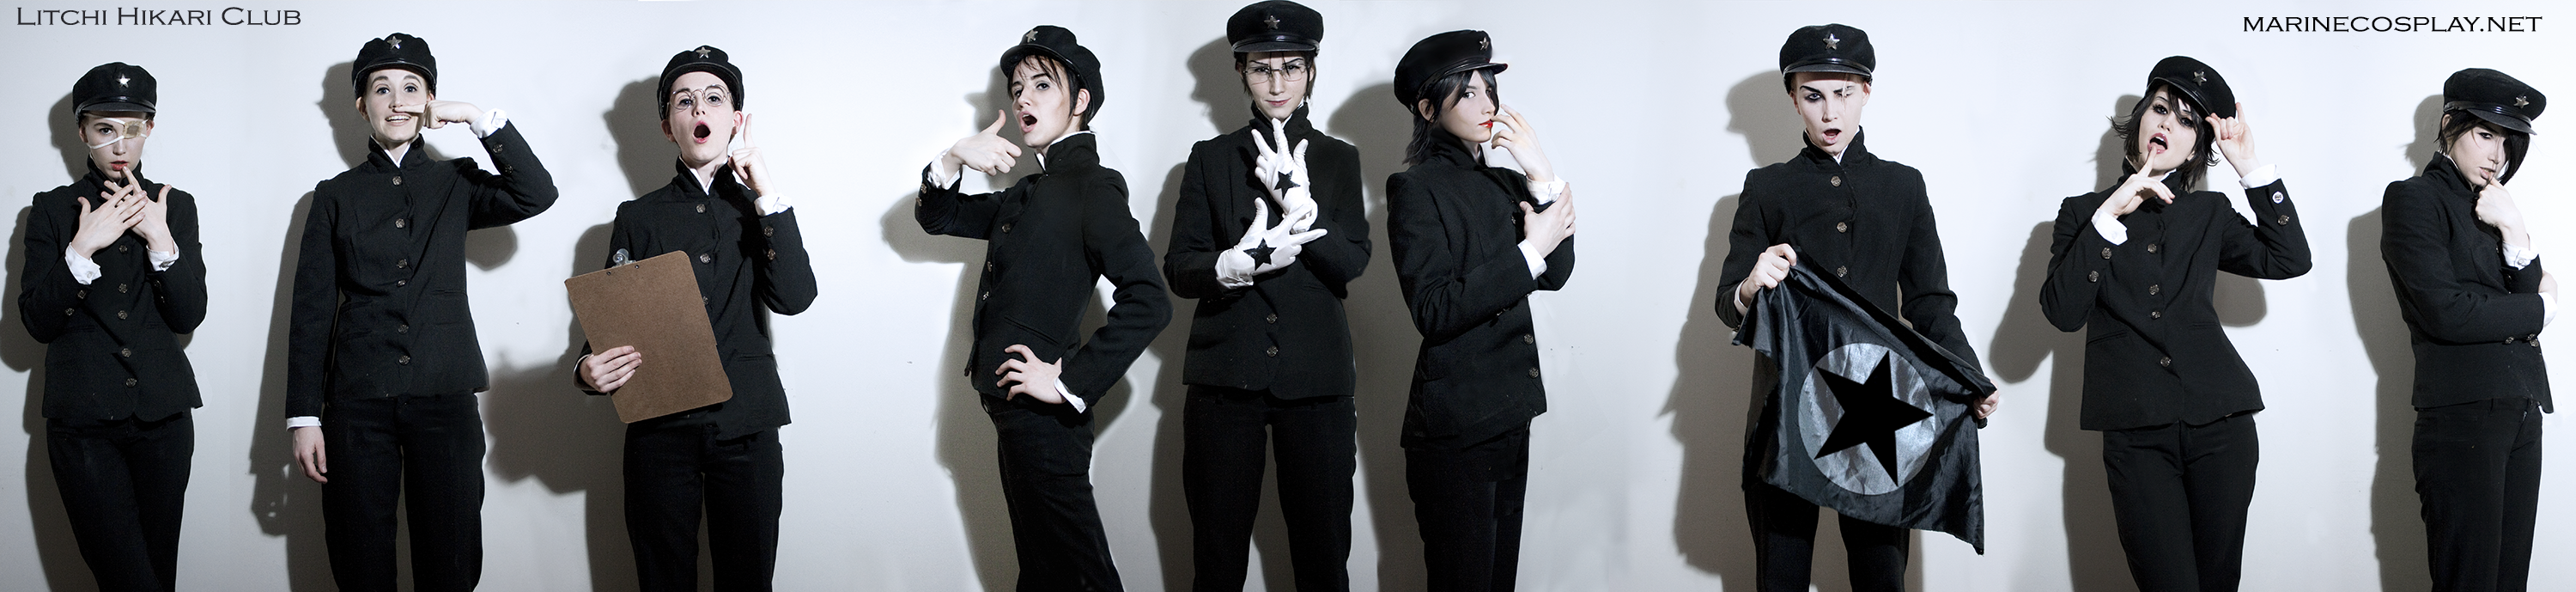 [PHOTOSHOOT][LITCHI HIKARI CLUB] LHC Make-up lab